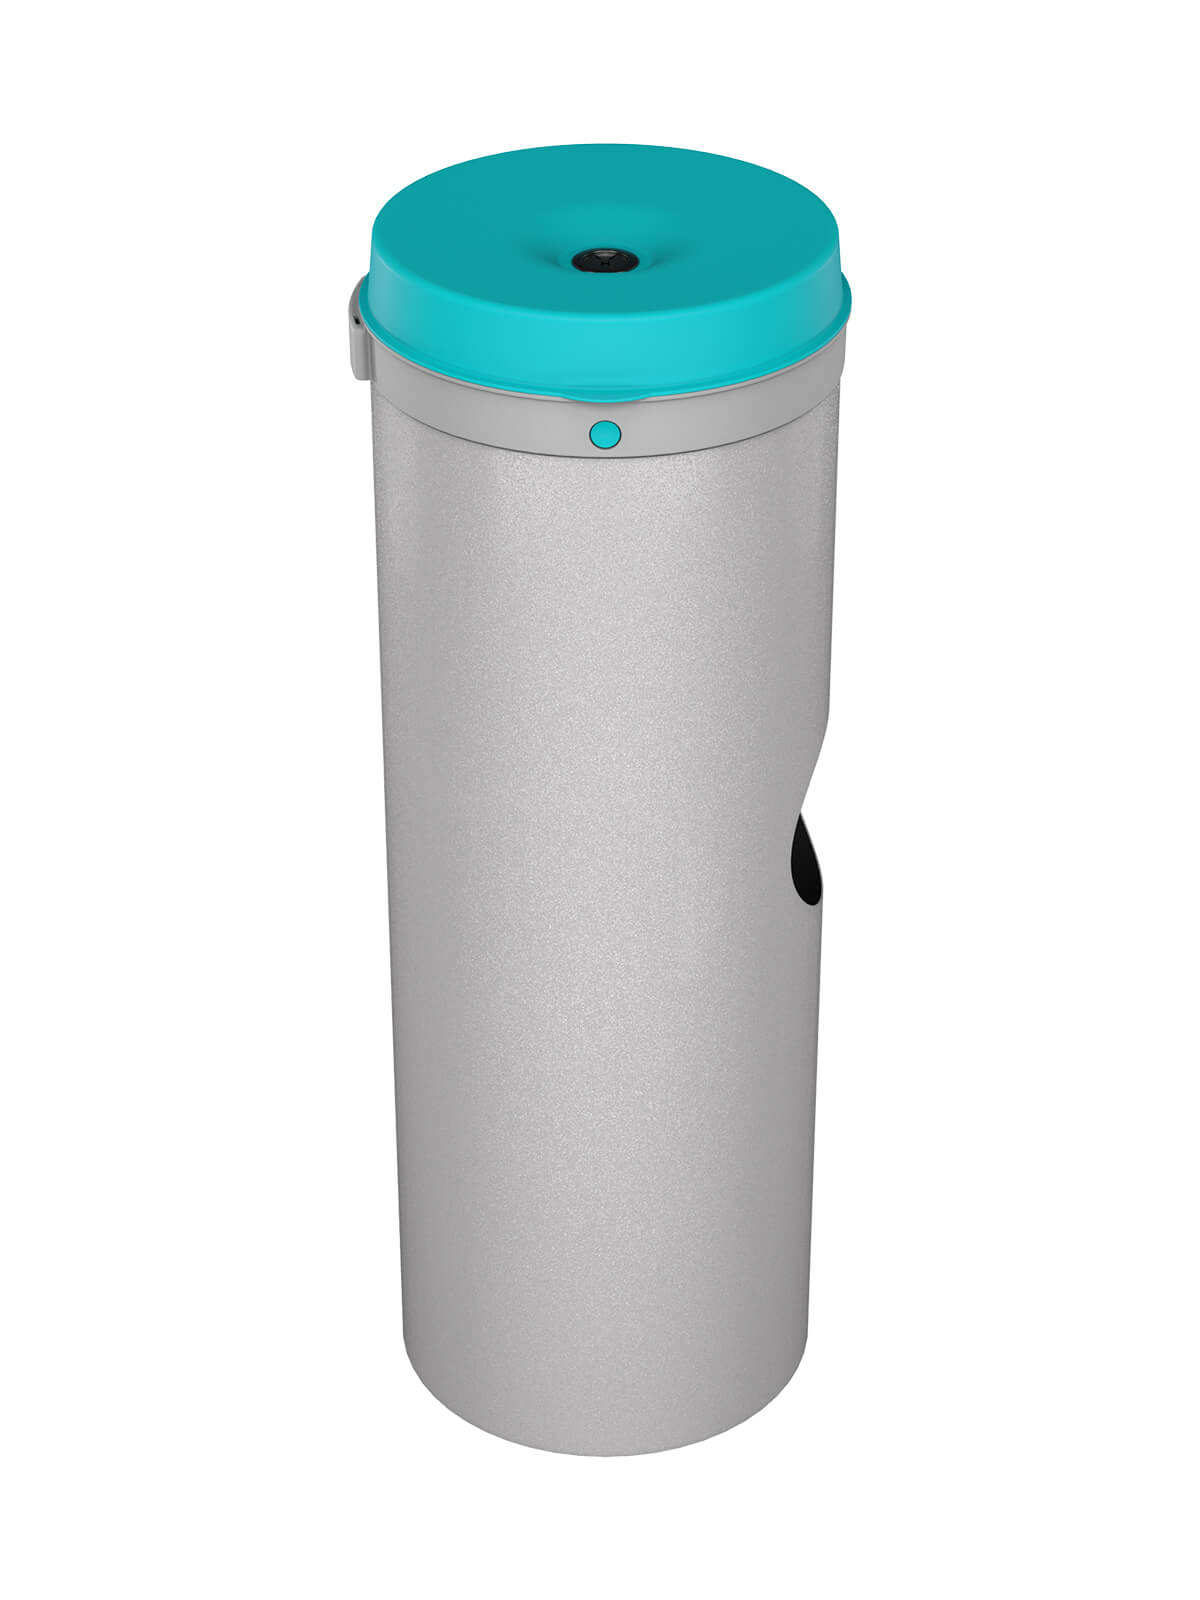 CLEANLI GO - Single - Full-Wipes - Silver-Grey-Teal